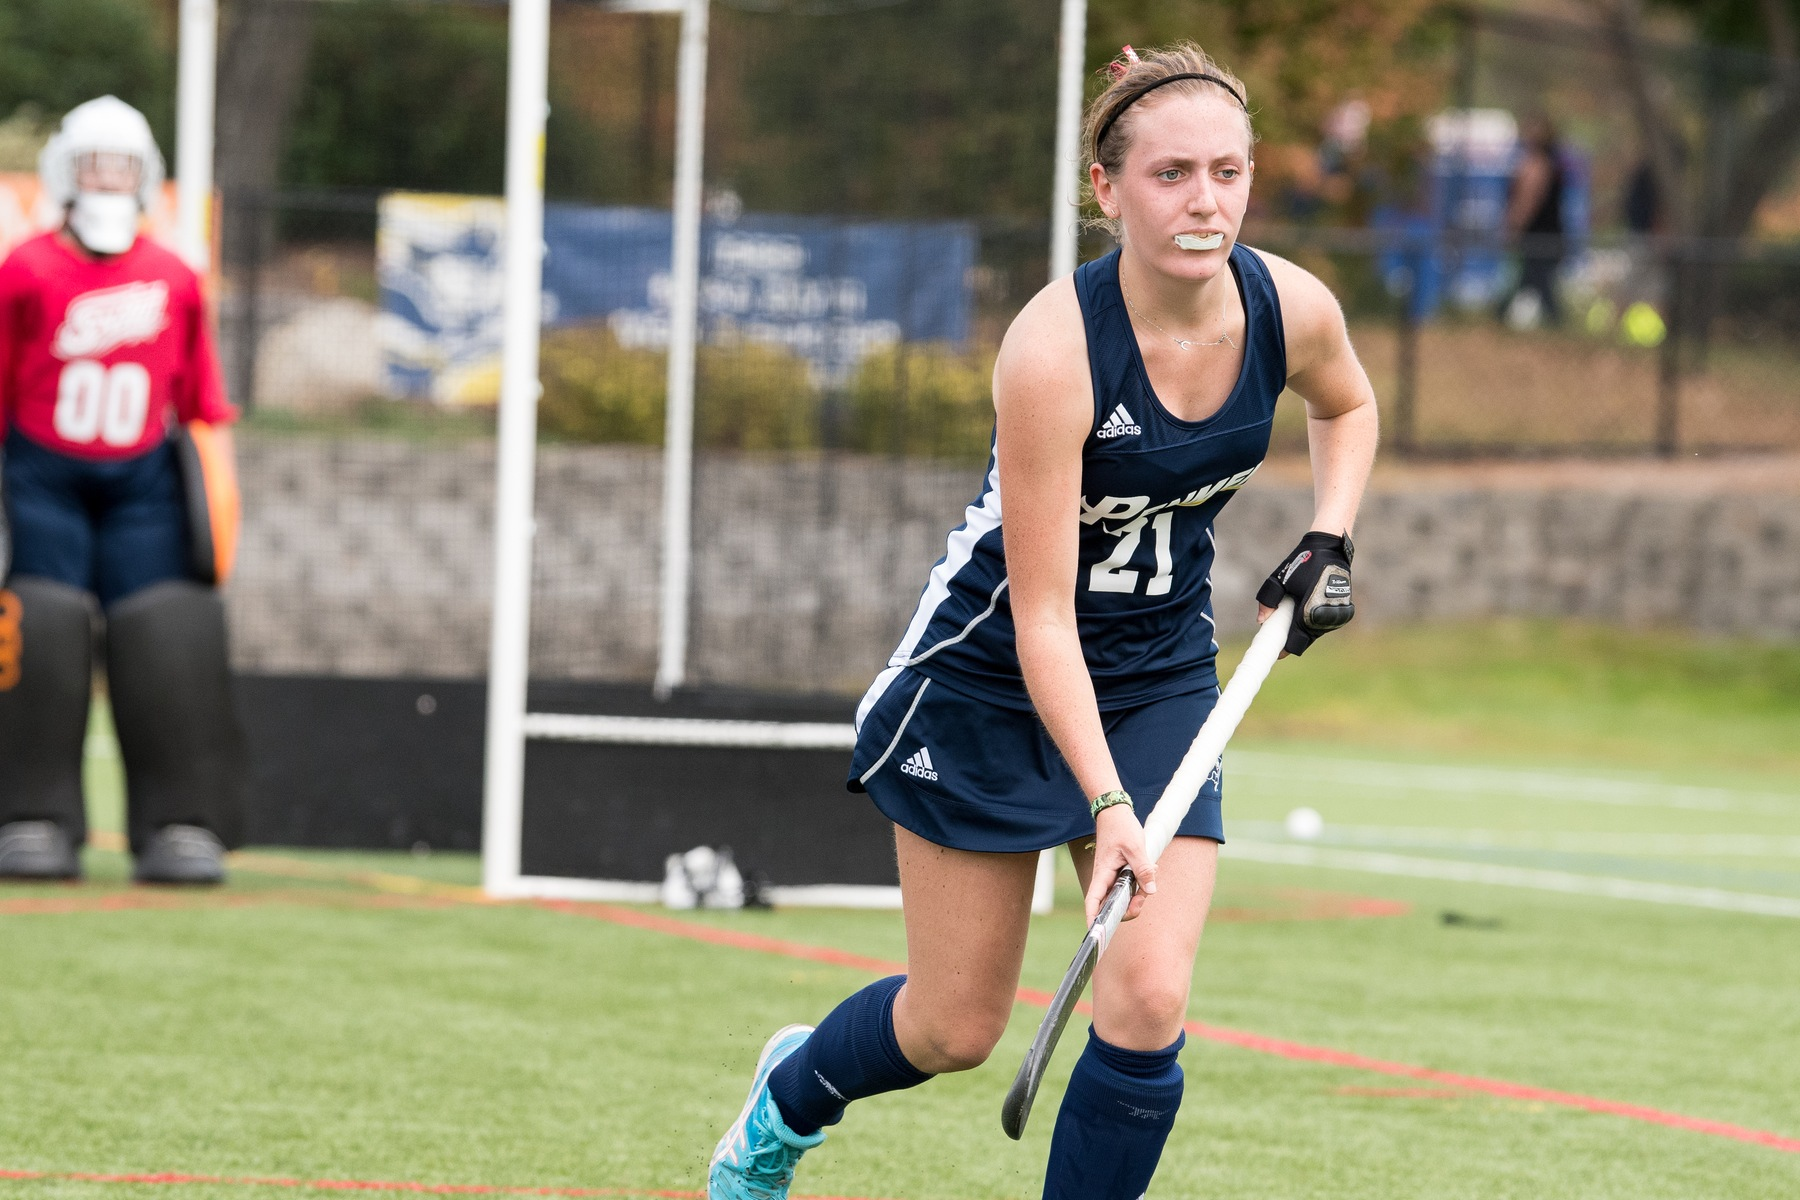 Field Hockey Falls on Final Play of Overtime to No. 4 Saint Anselm, 4-3